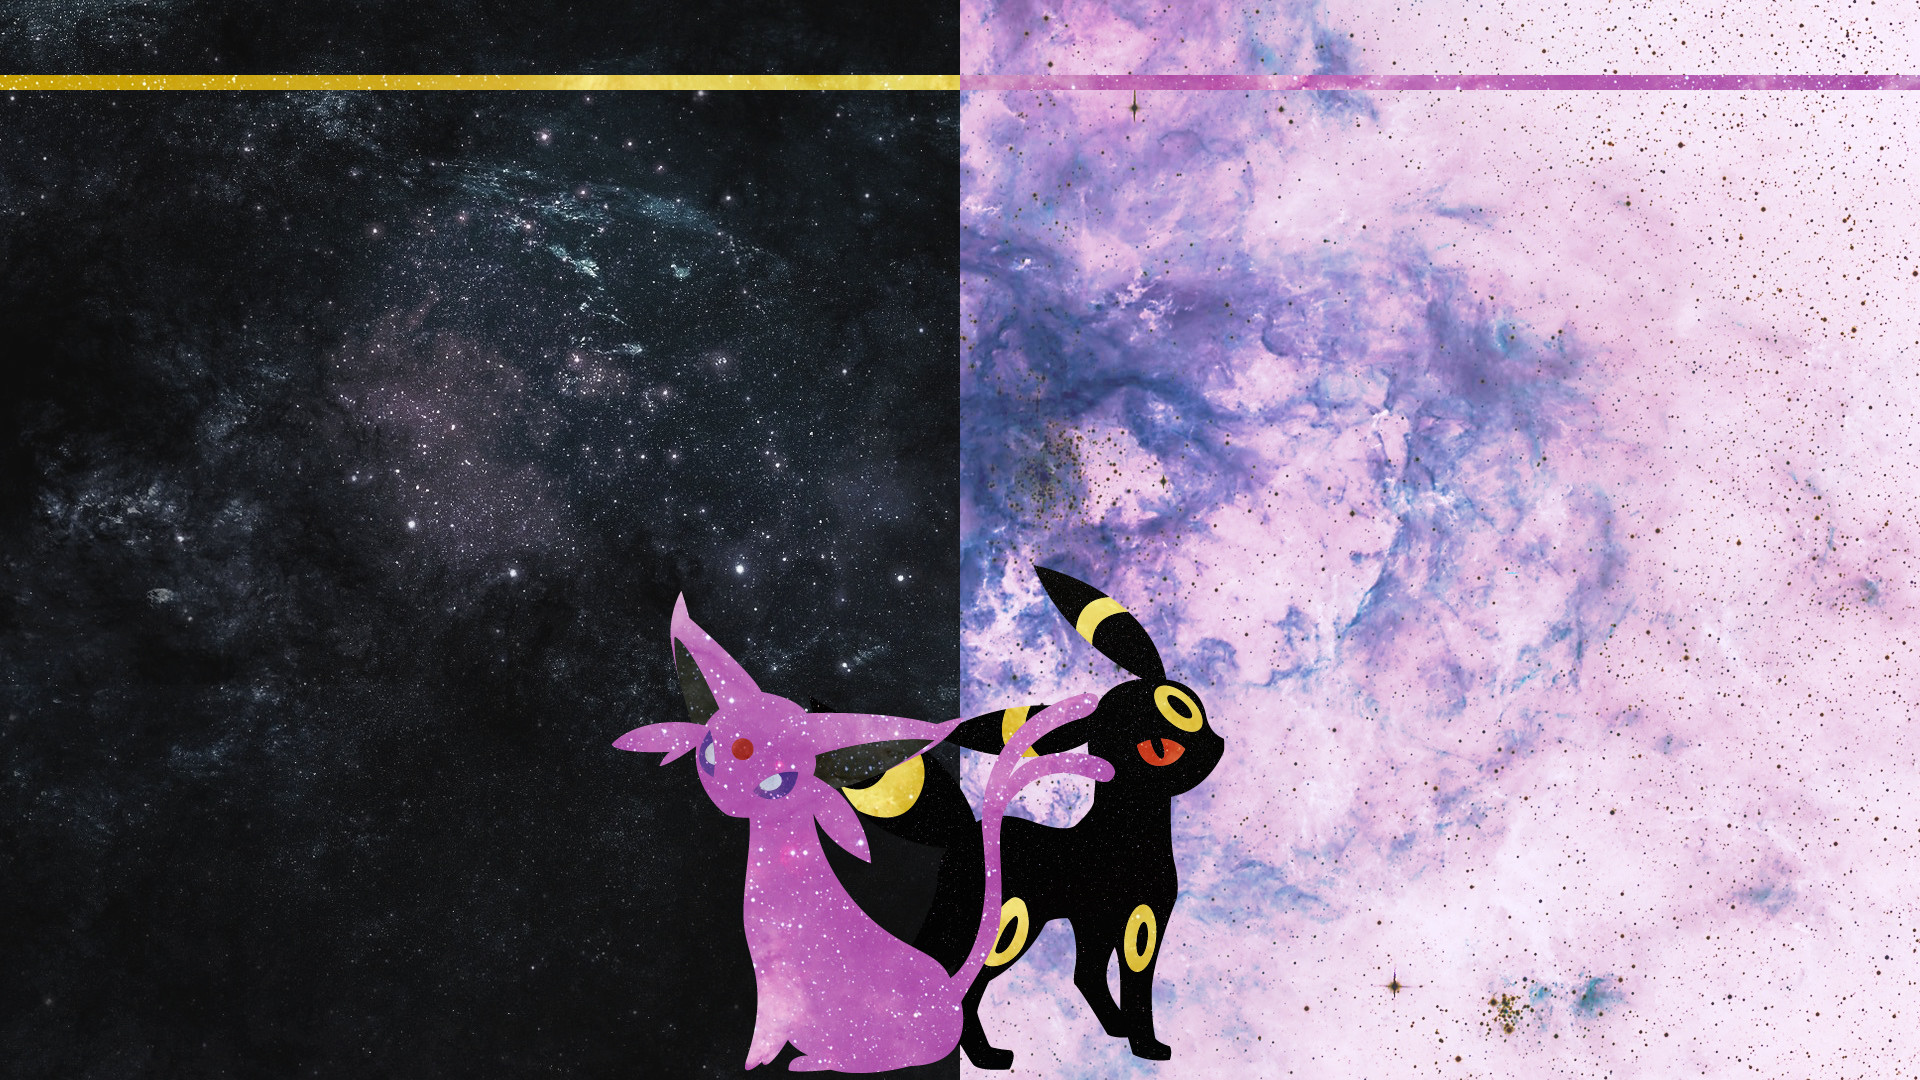 Umbreon and Espeon Wallpaper (74+ images)